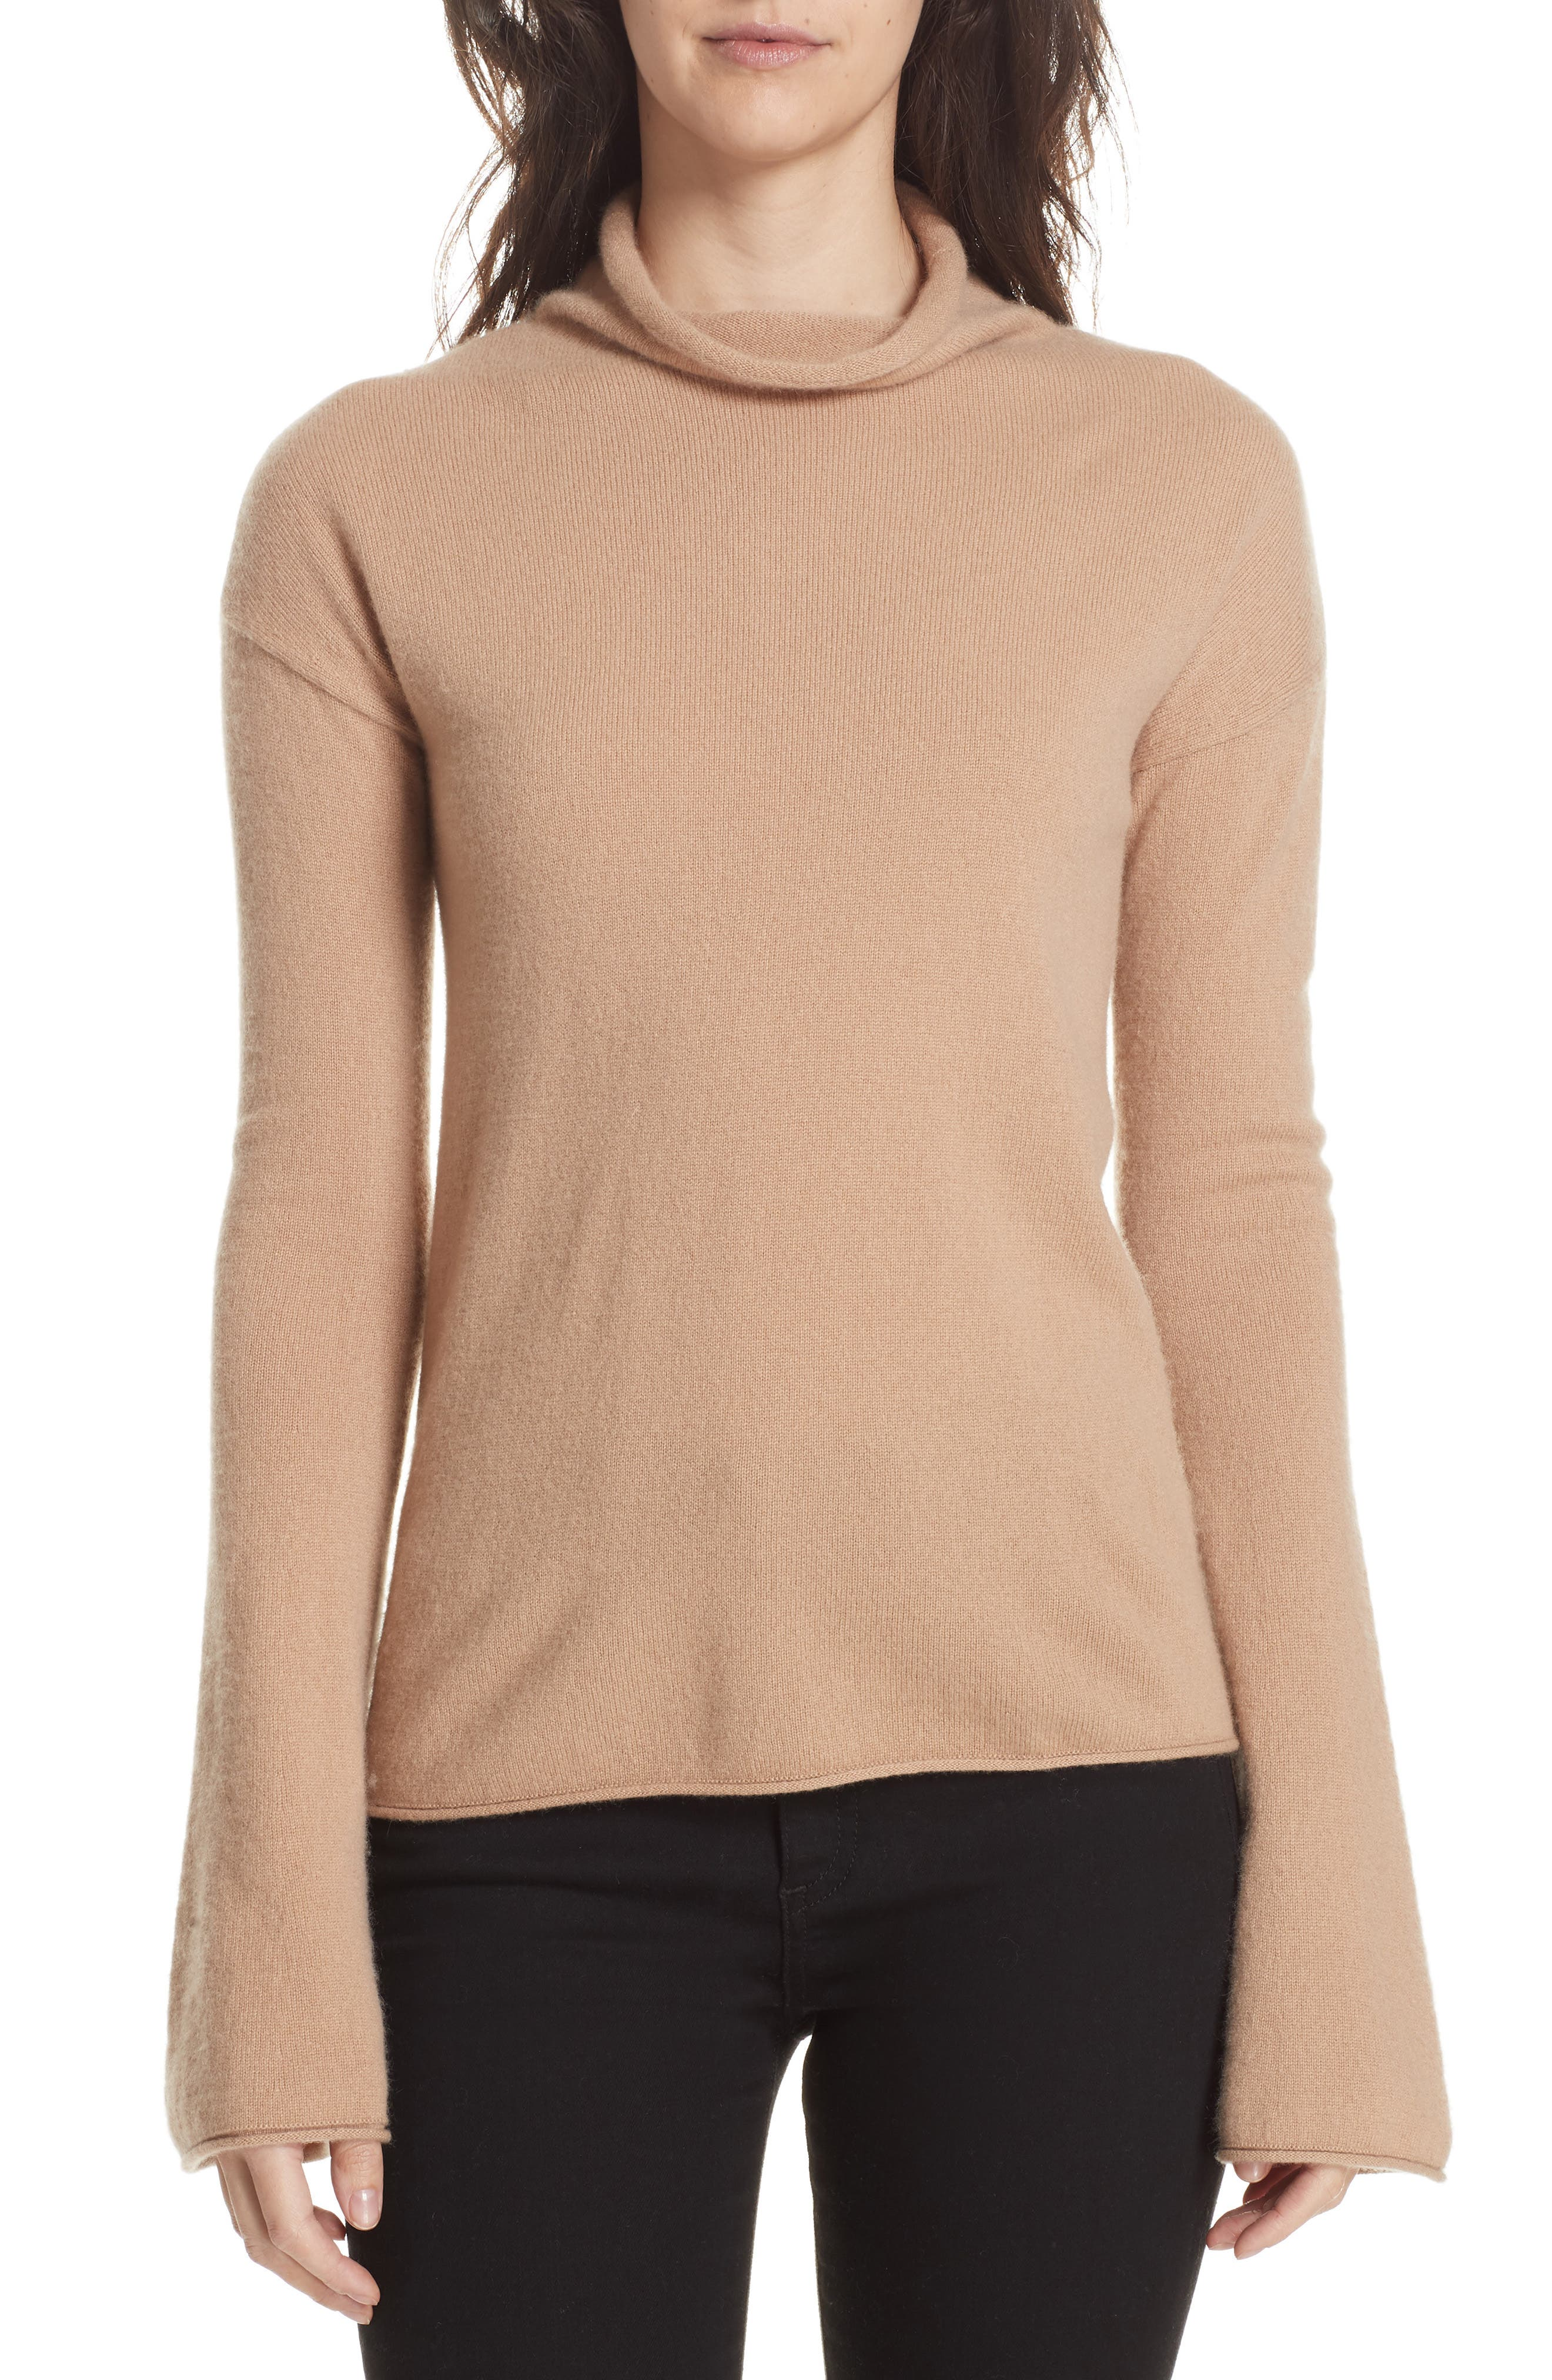 Bell-Sleeve Mock-Neck Cashmere Sweater in Camel